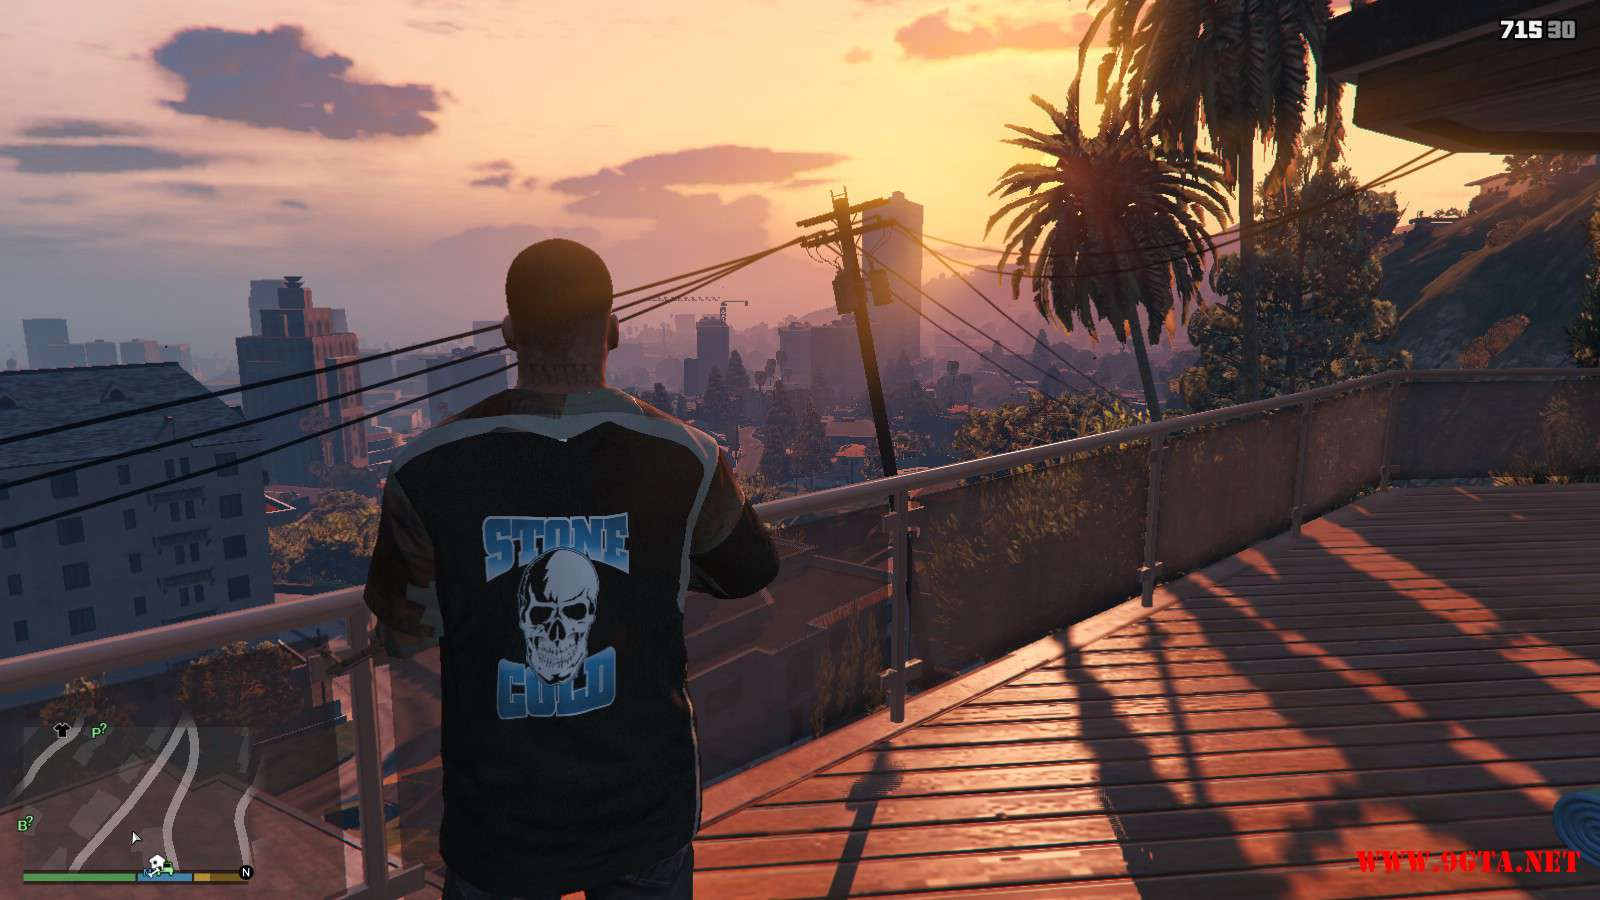 WWE Stone Cold Steve Austin Shirt GTA5 Mods (6)